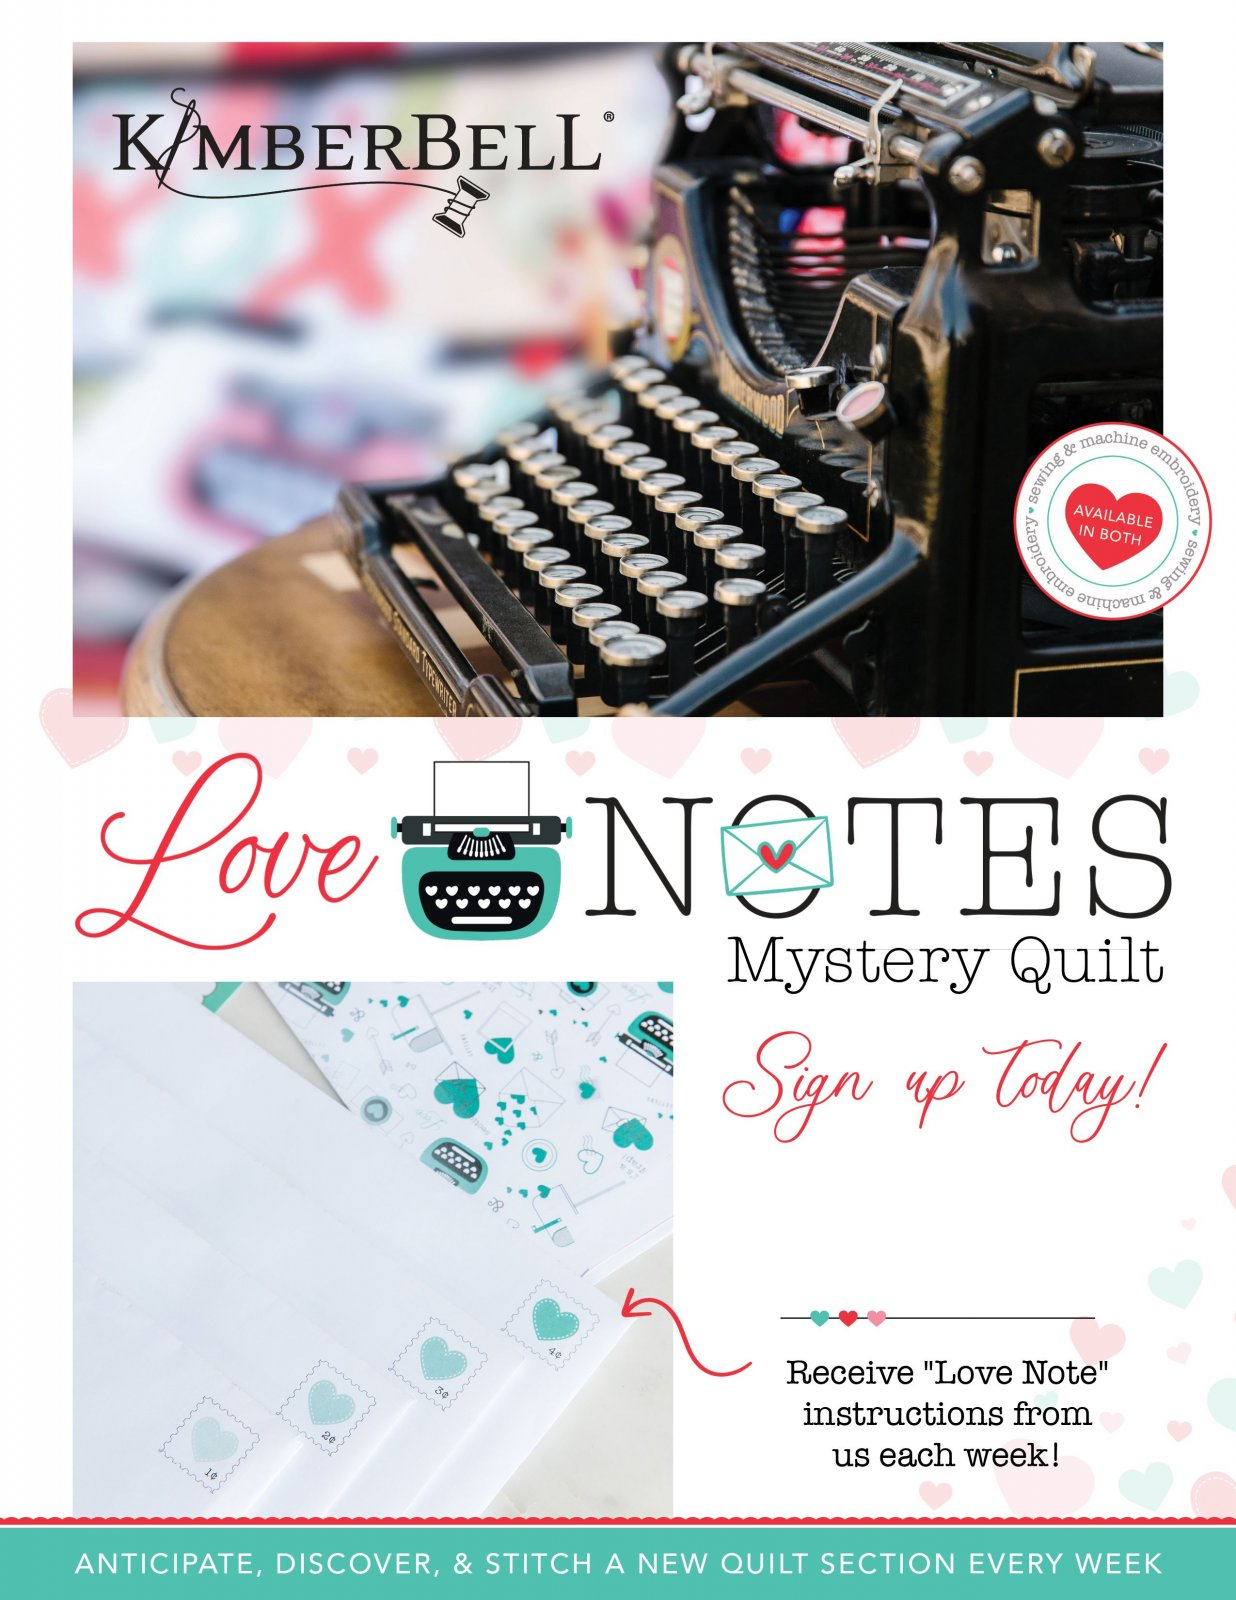 Kimberbell - Love Notes Mystery Quilt BOM - Sewing